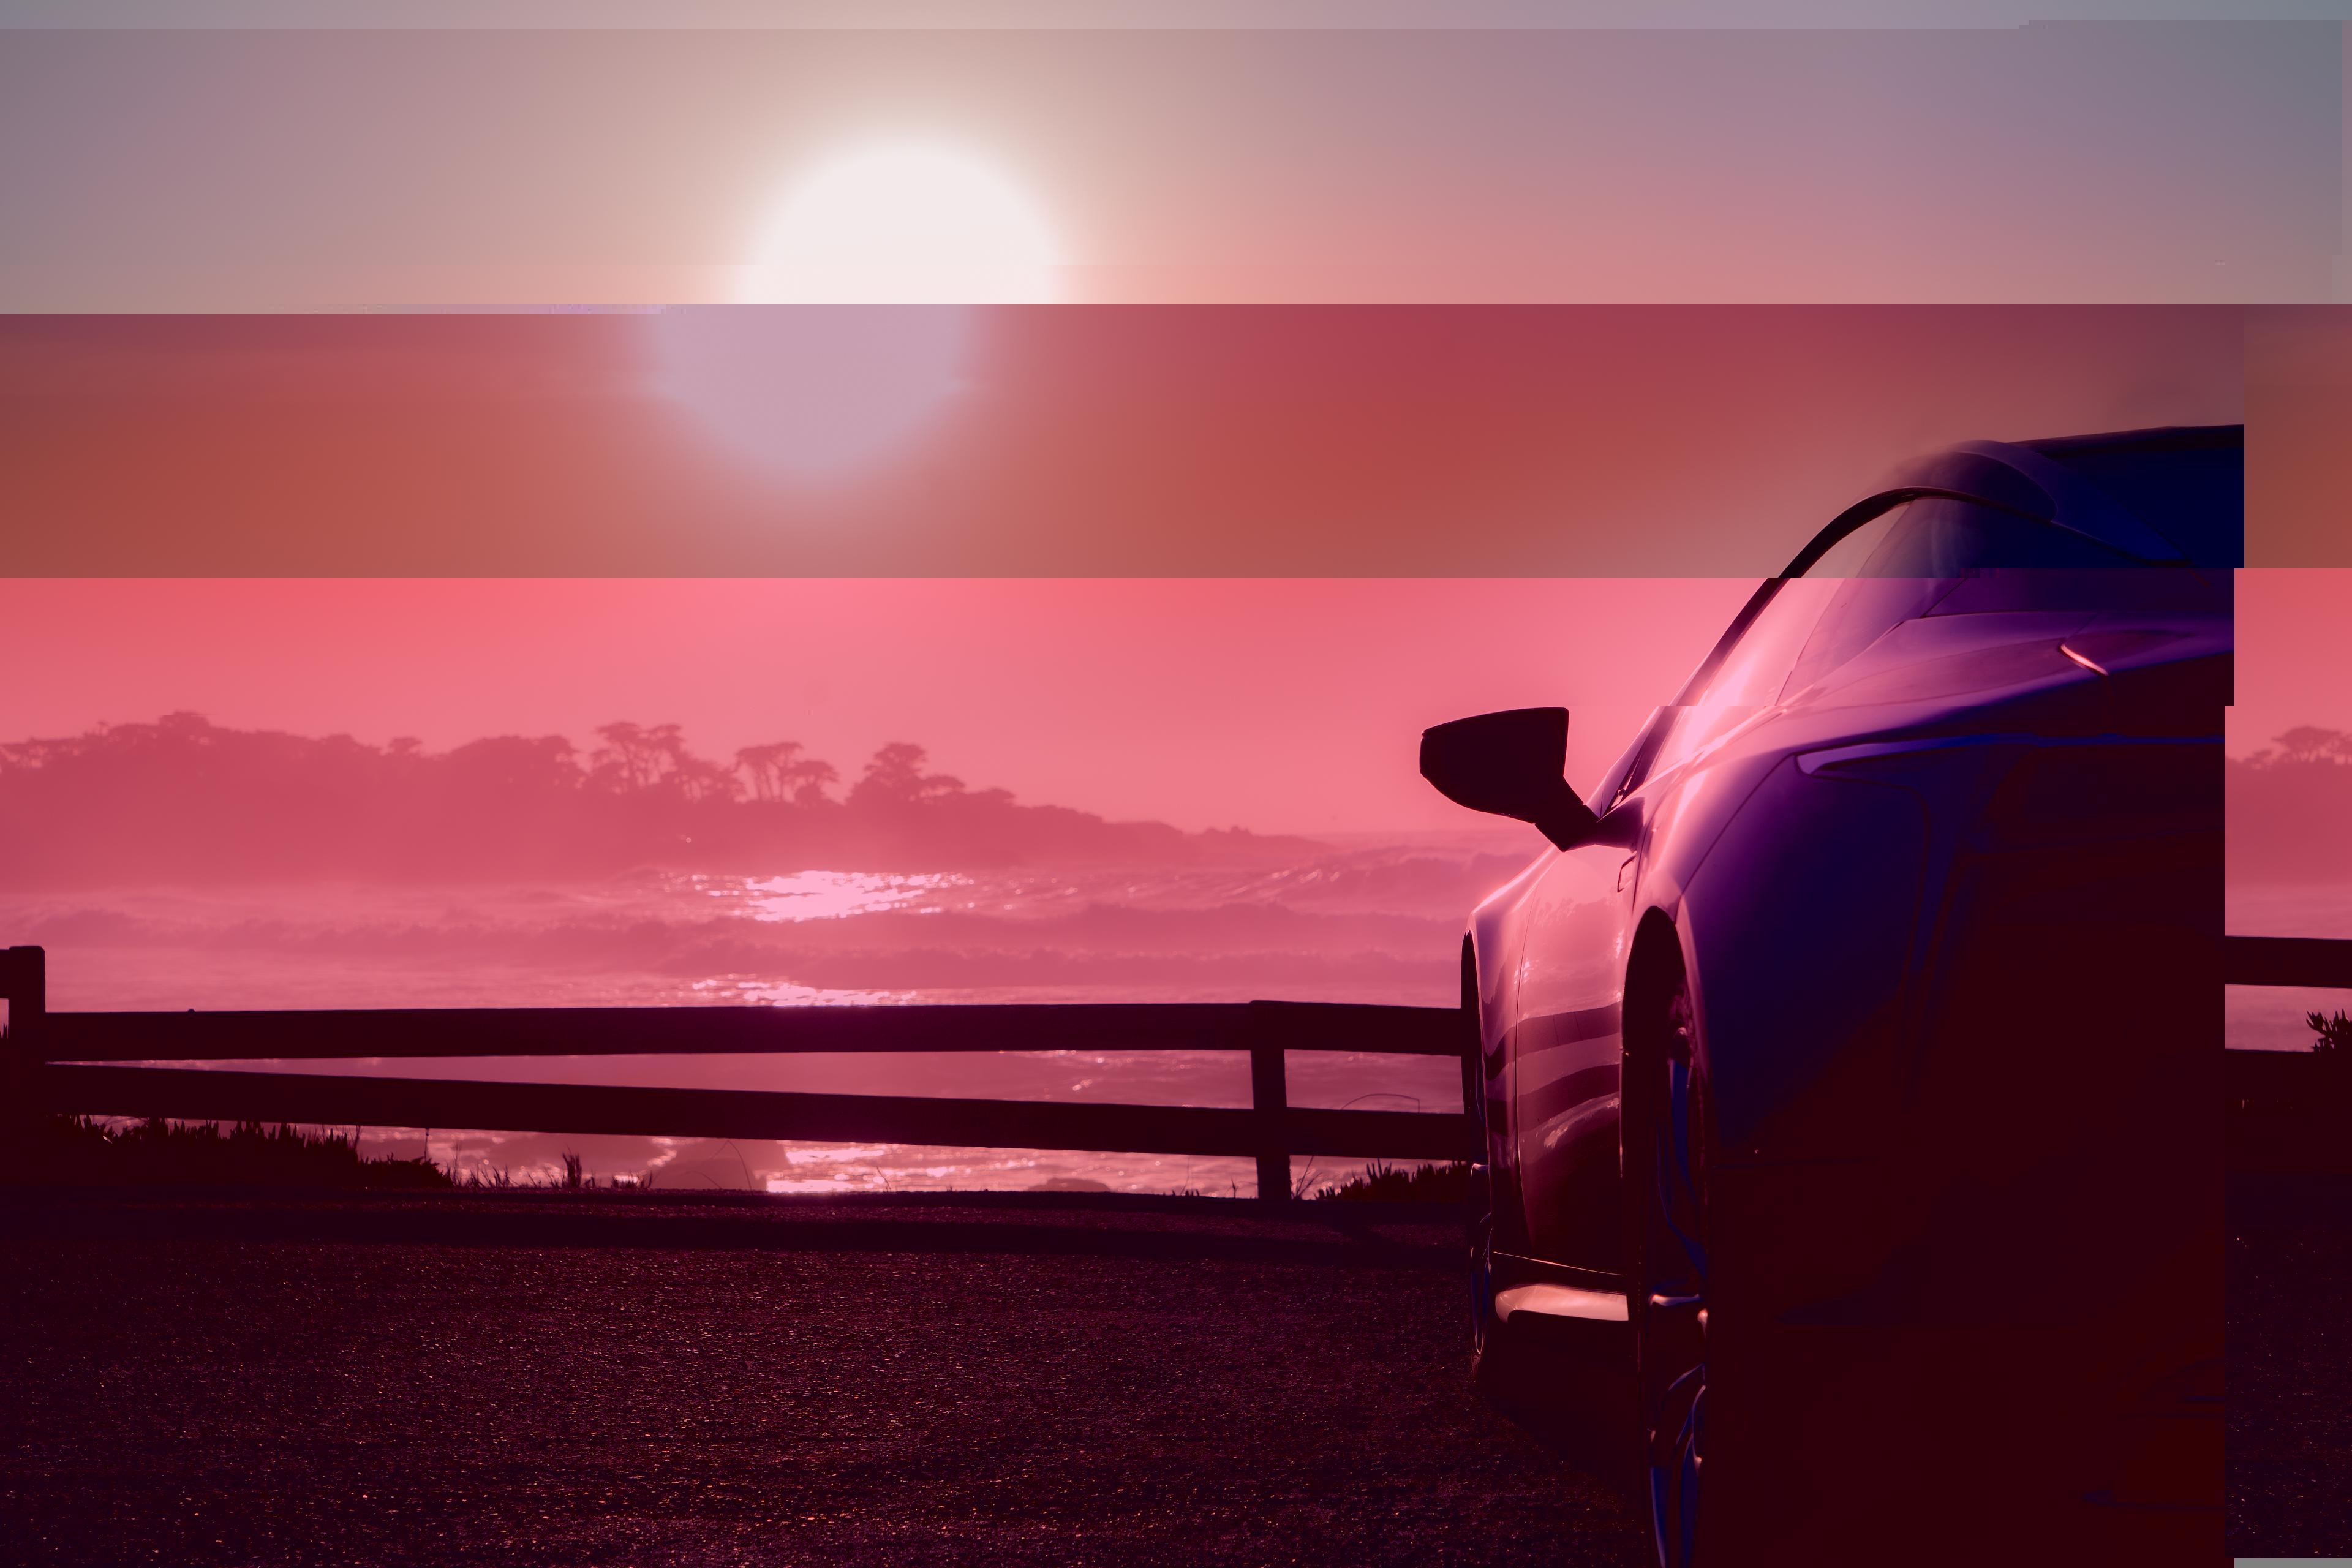 California 4k Wallpapers For Your Desktop Or Mobile Screen Free